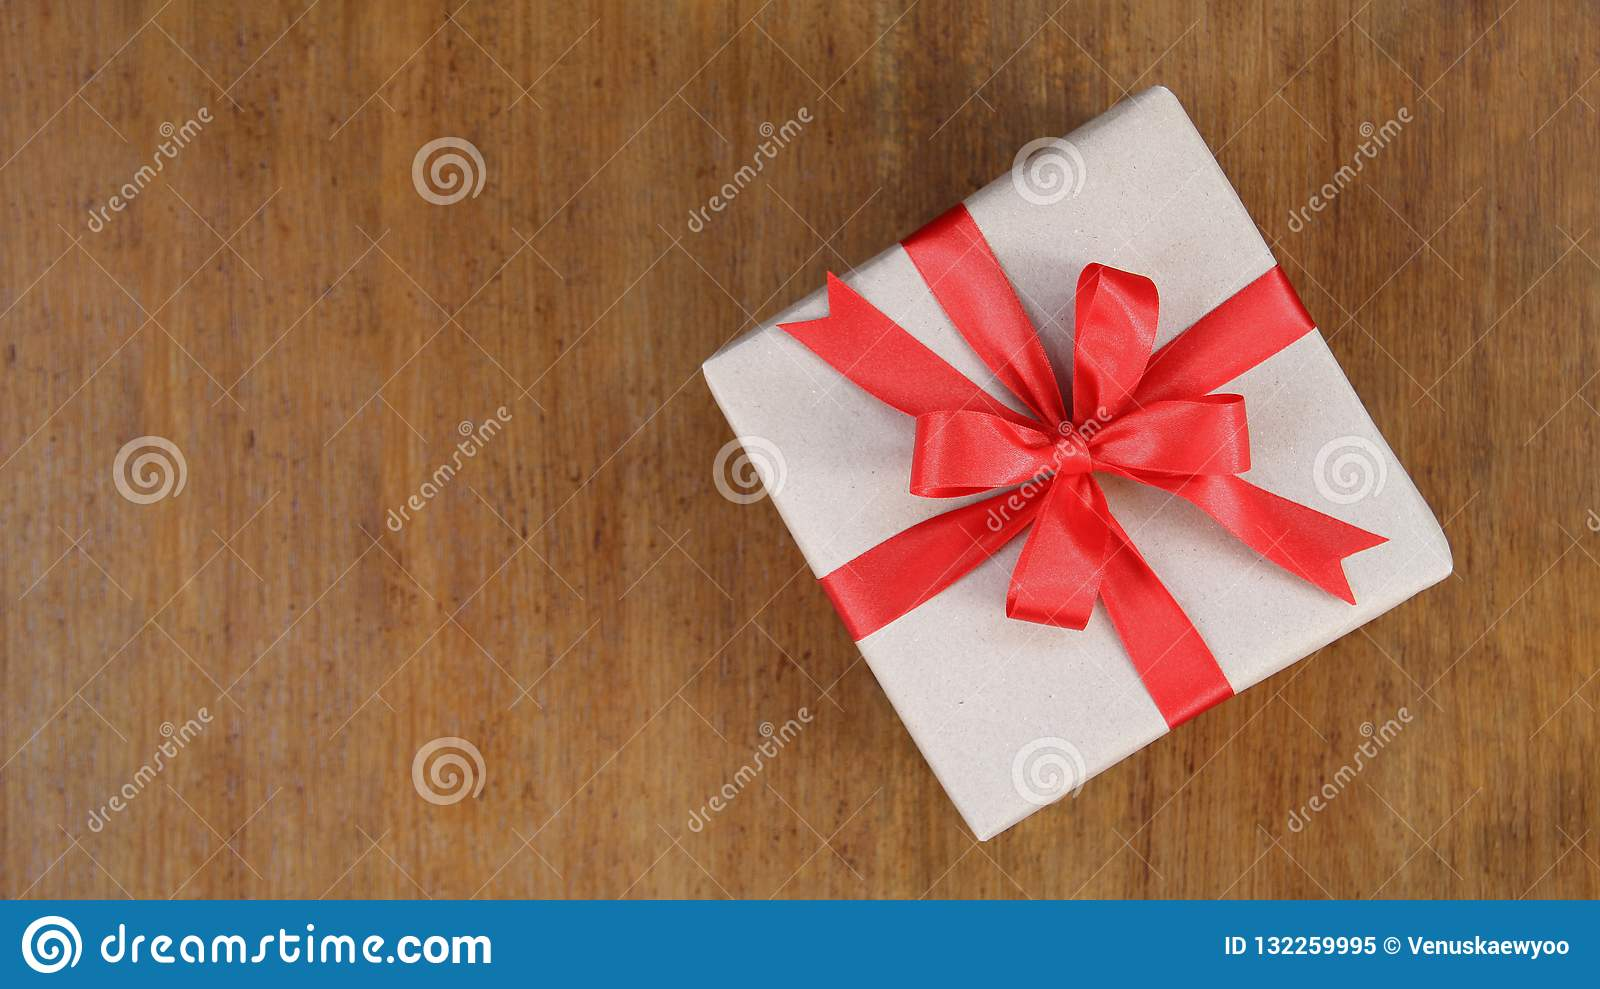 Gift box wrapped in brown recycled paper with red ribbon bow top